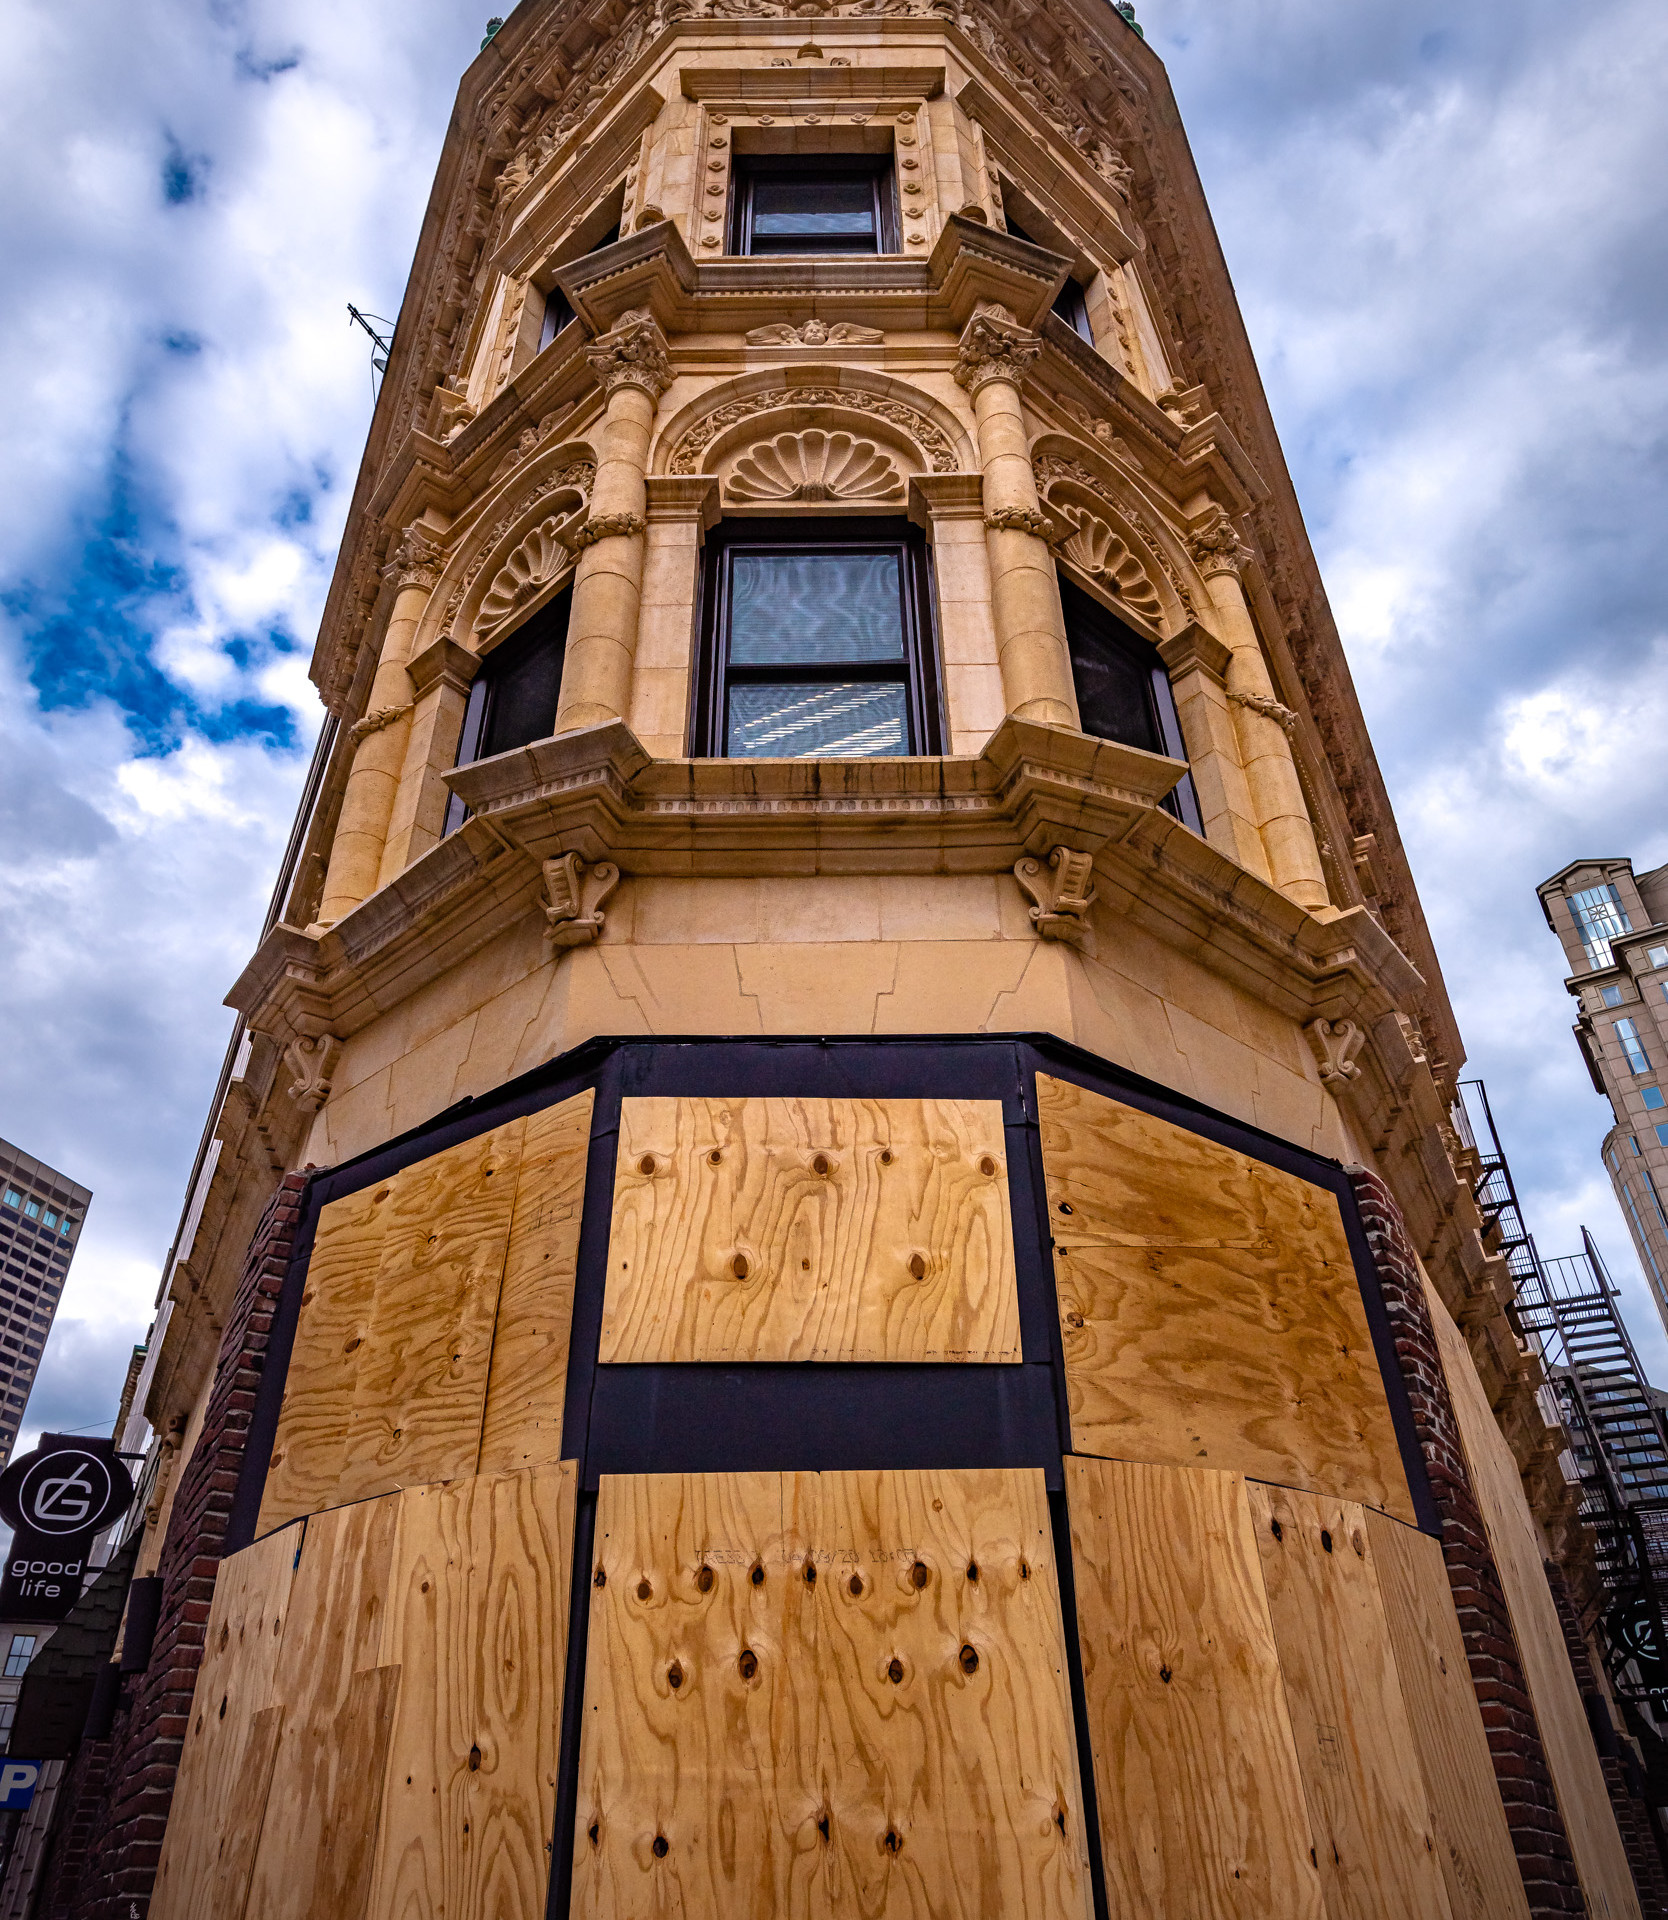 Boarded up - to protect from looting, I suppose.